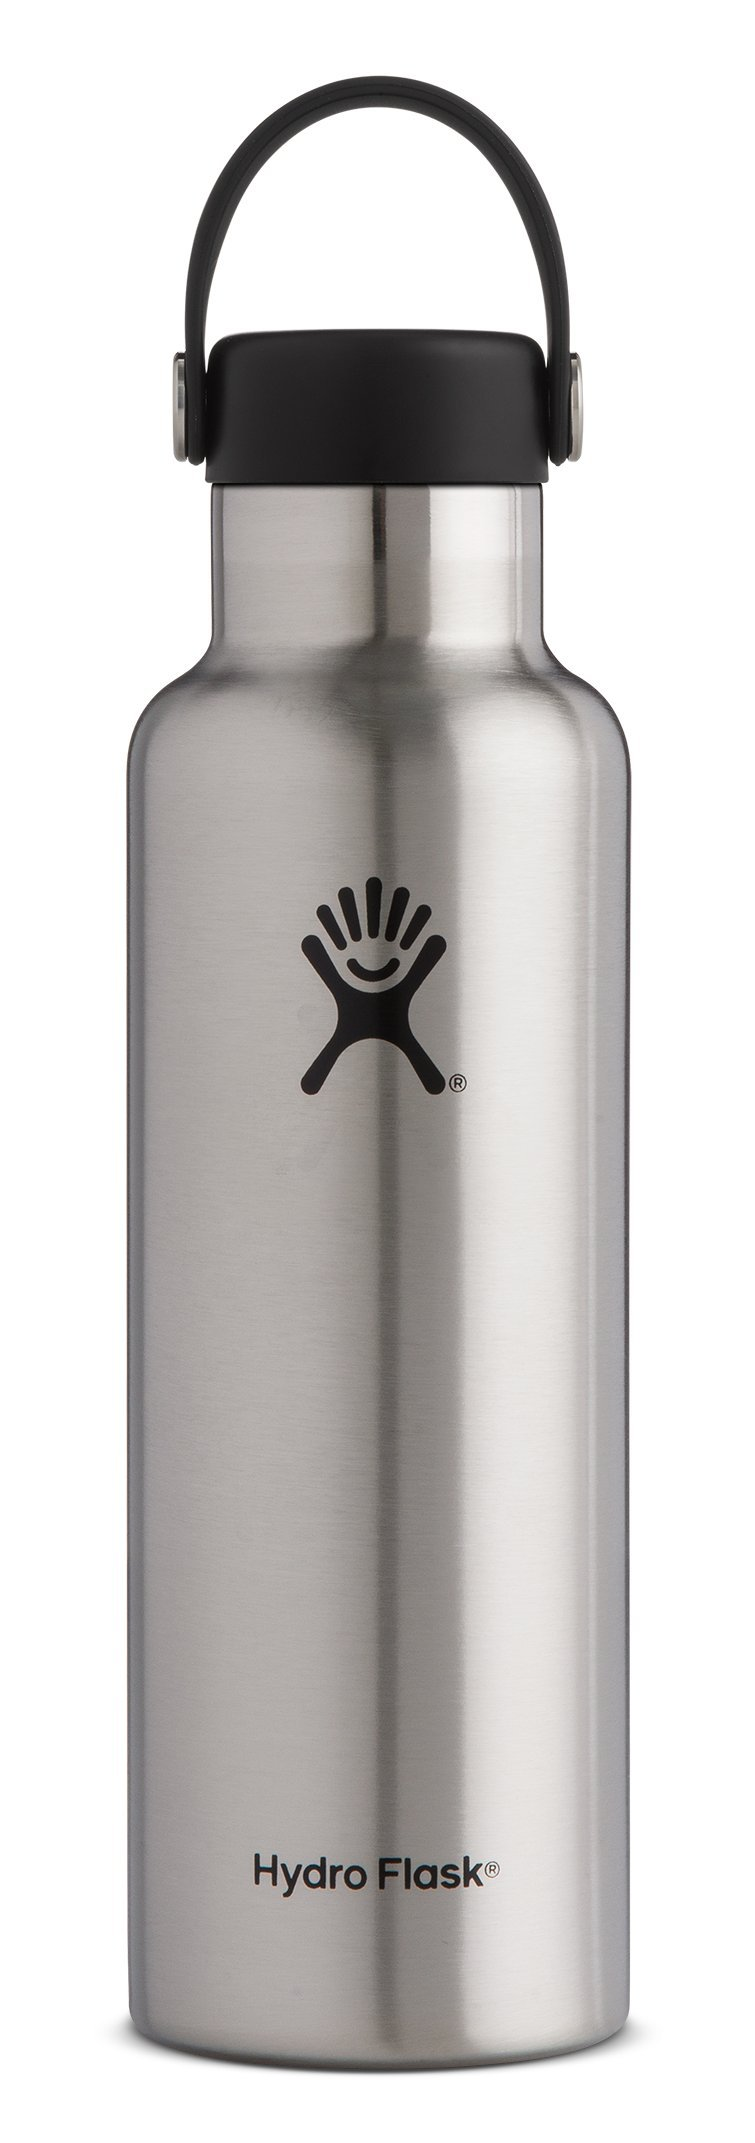 Hydro Flask 12 oz Double Wall Vacuum Insulated Stainless Steel Leak Proof Sports Water Bottle, Standard Mouth with BPA Free Flex Cap, Stainless